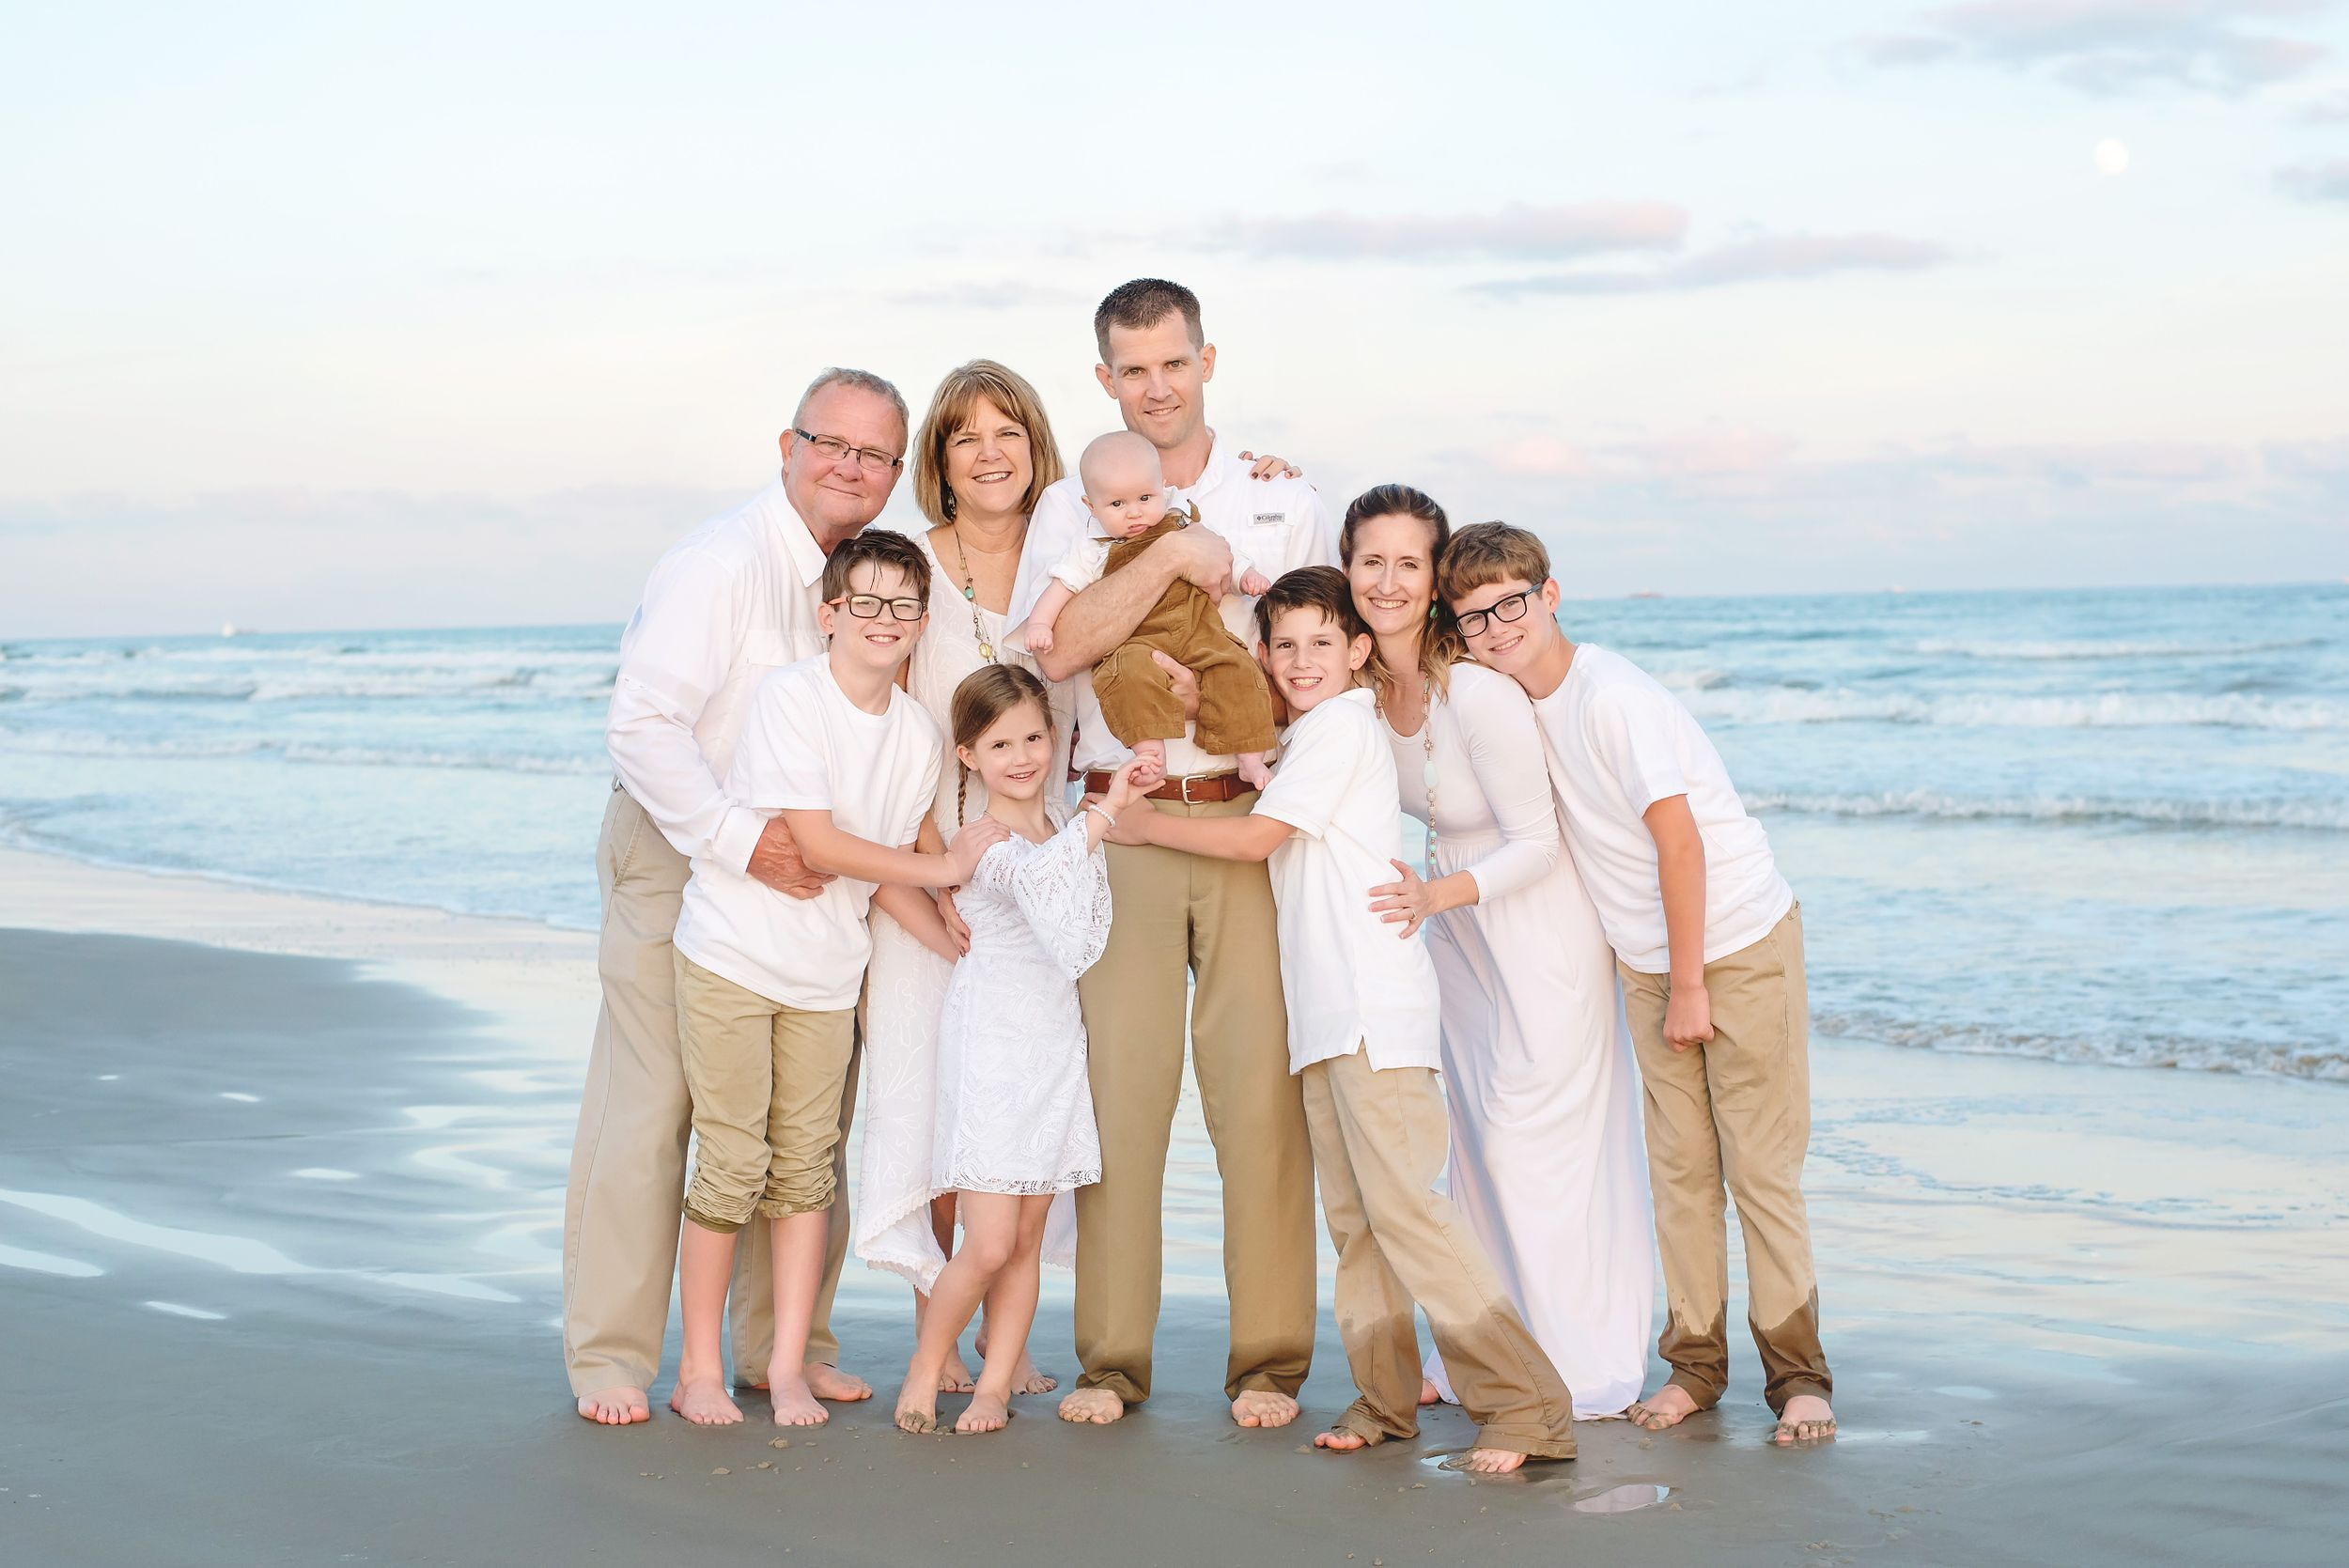 Family beach photo in Port Aransas, TX